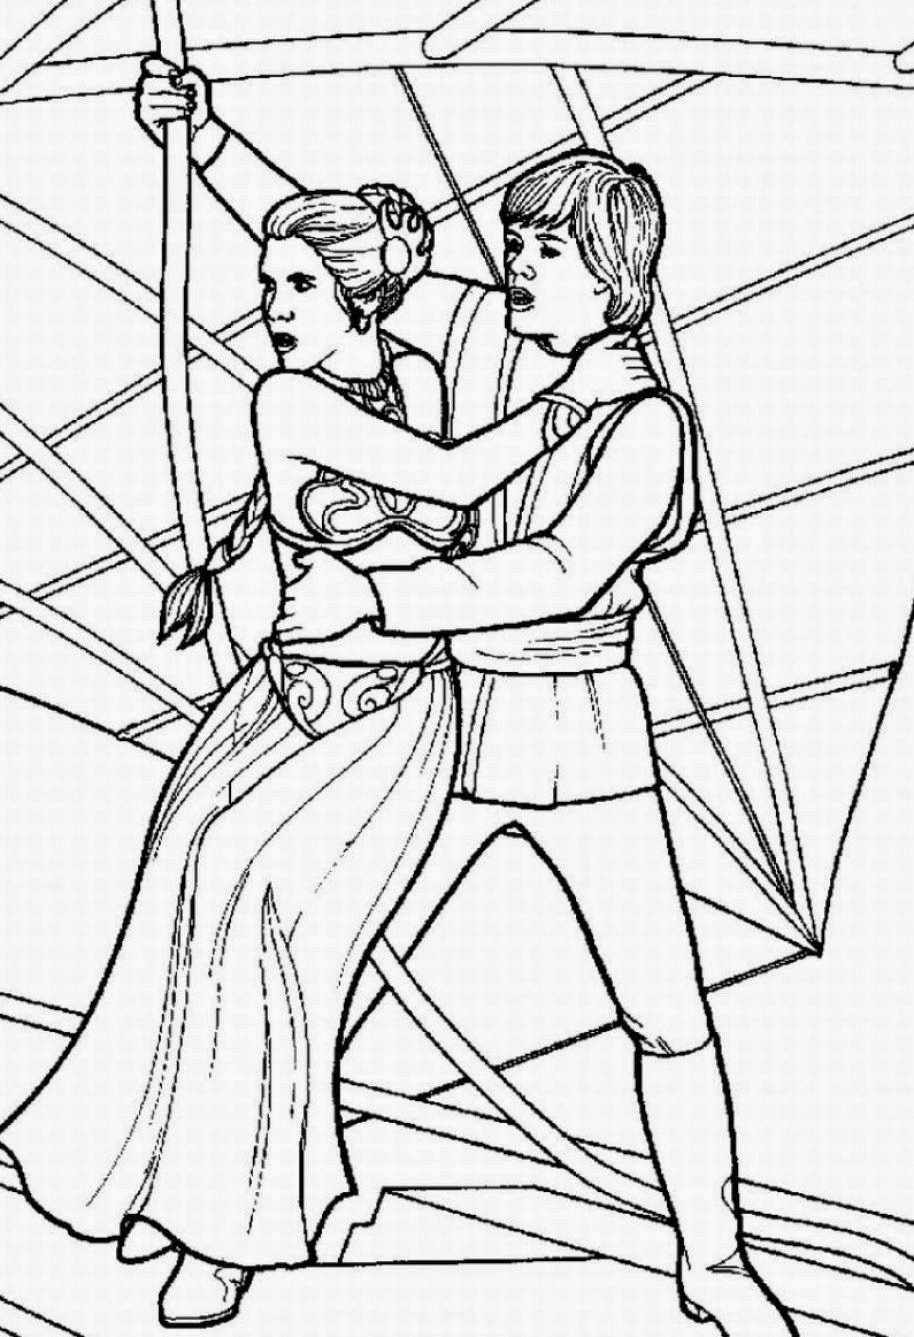 Star Wars Free Printable Coloring Pages  Coloring Pages Star Wars Free Printable Coloring Pages